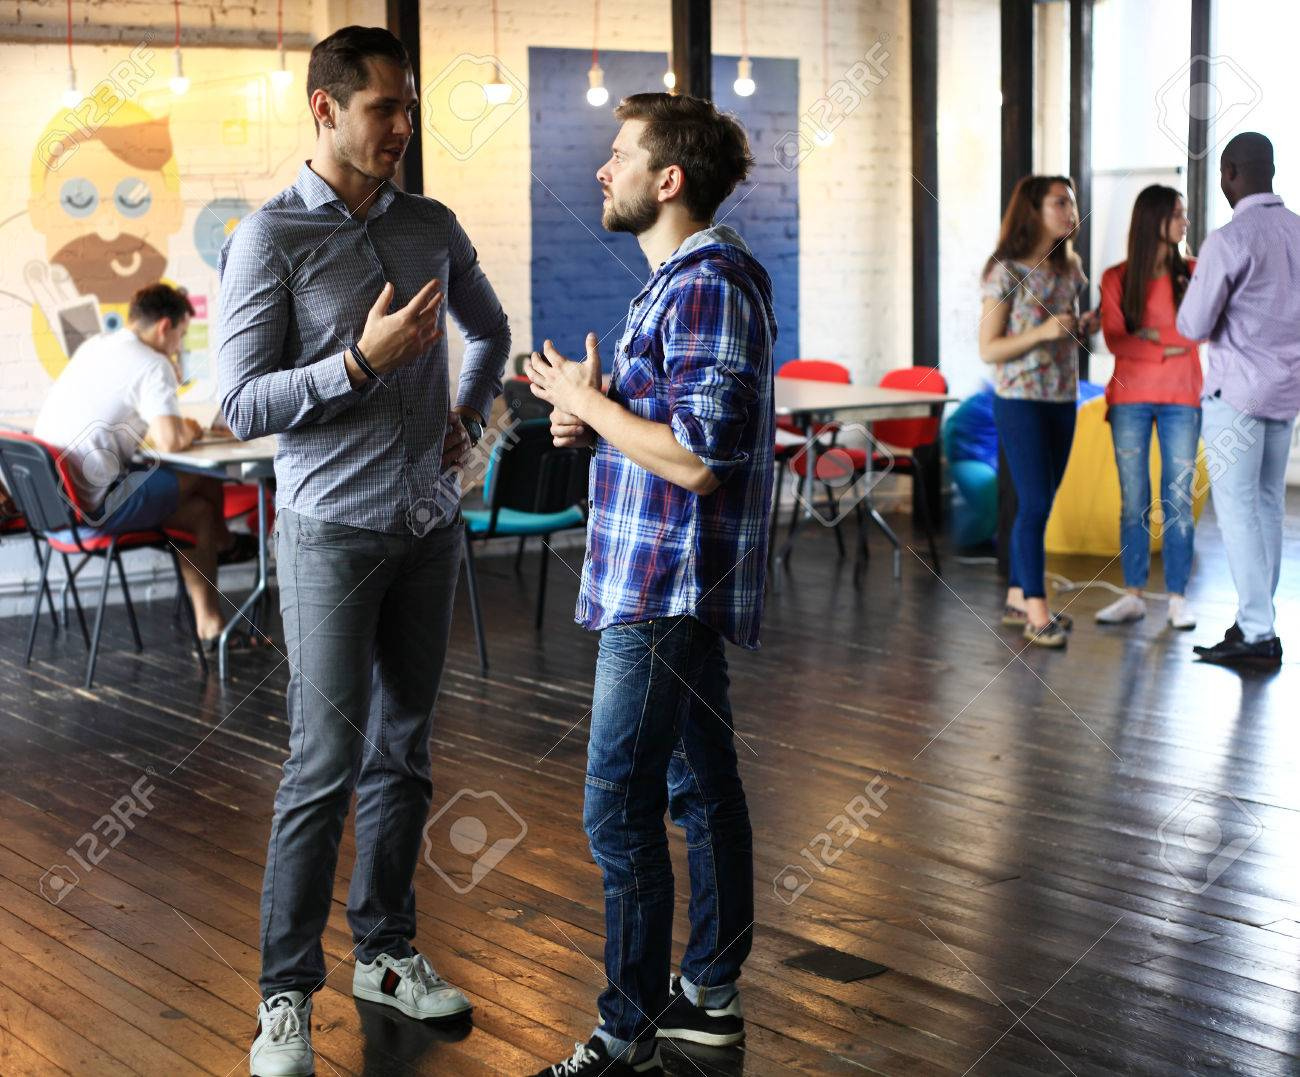 group of young business people , Startup entrepreneurs working on their venture in coworking space - 61316965